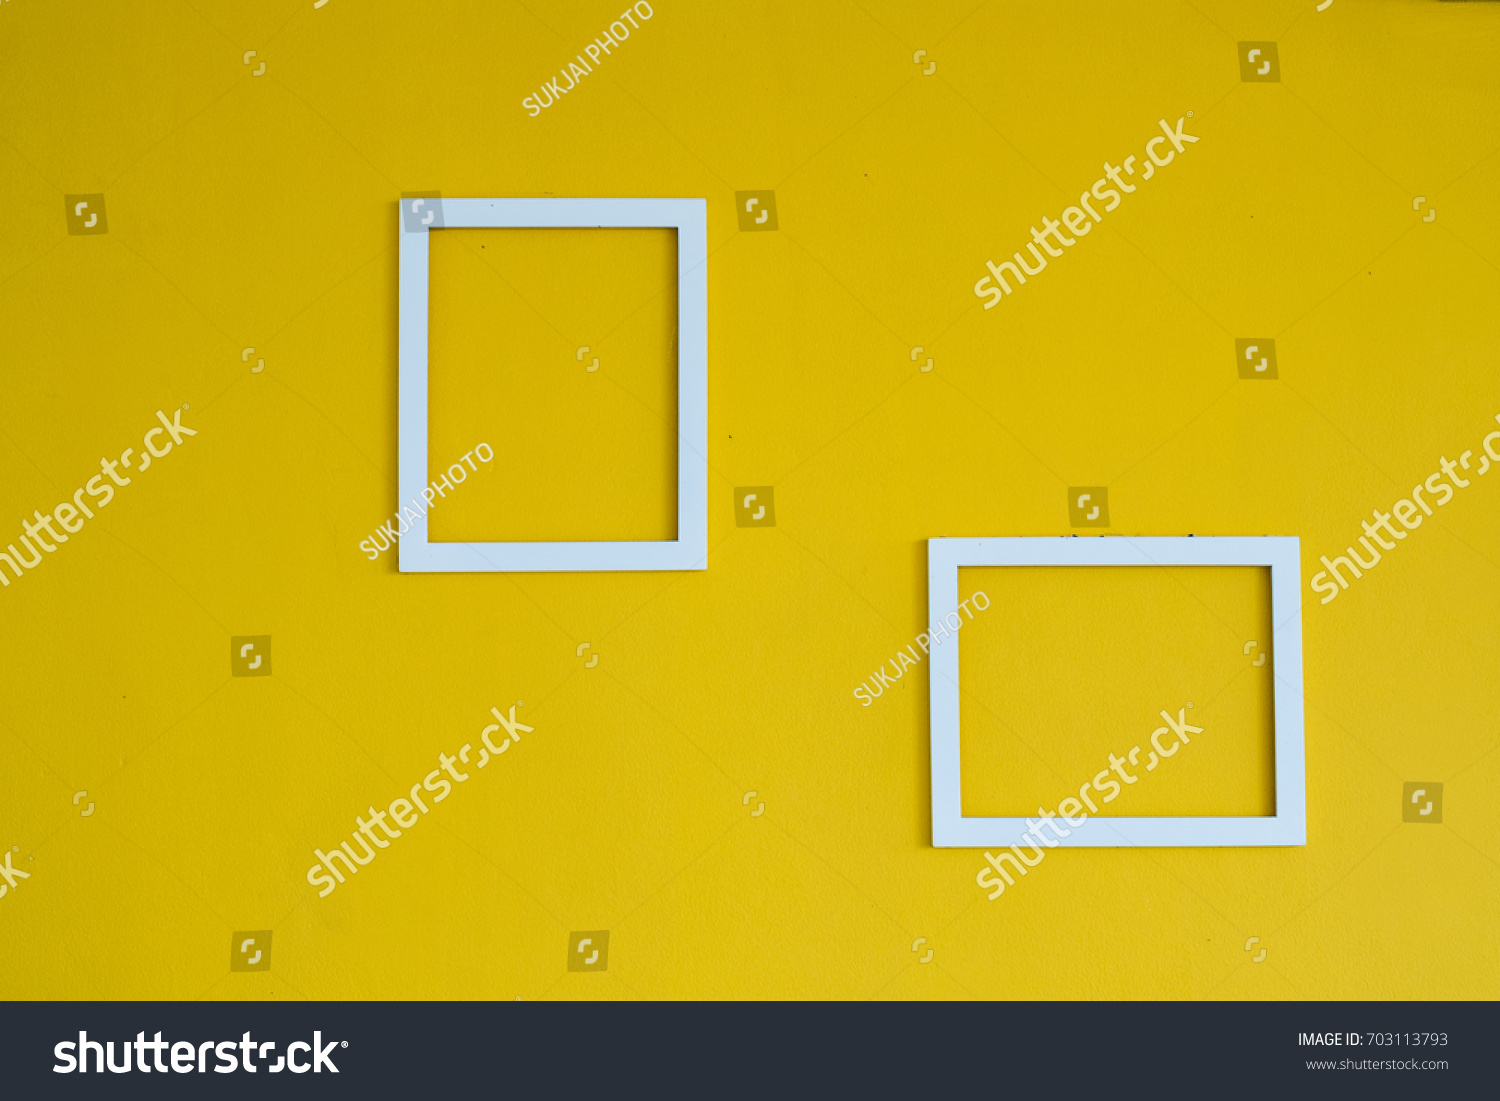 Two Blank White Square Frames On Stock Photo (Royalty Free ...